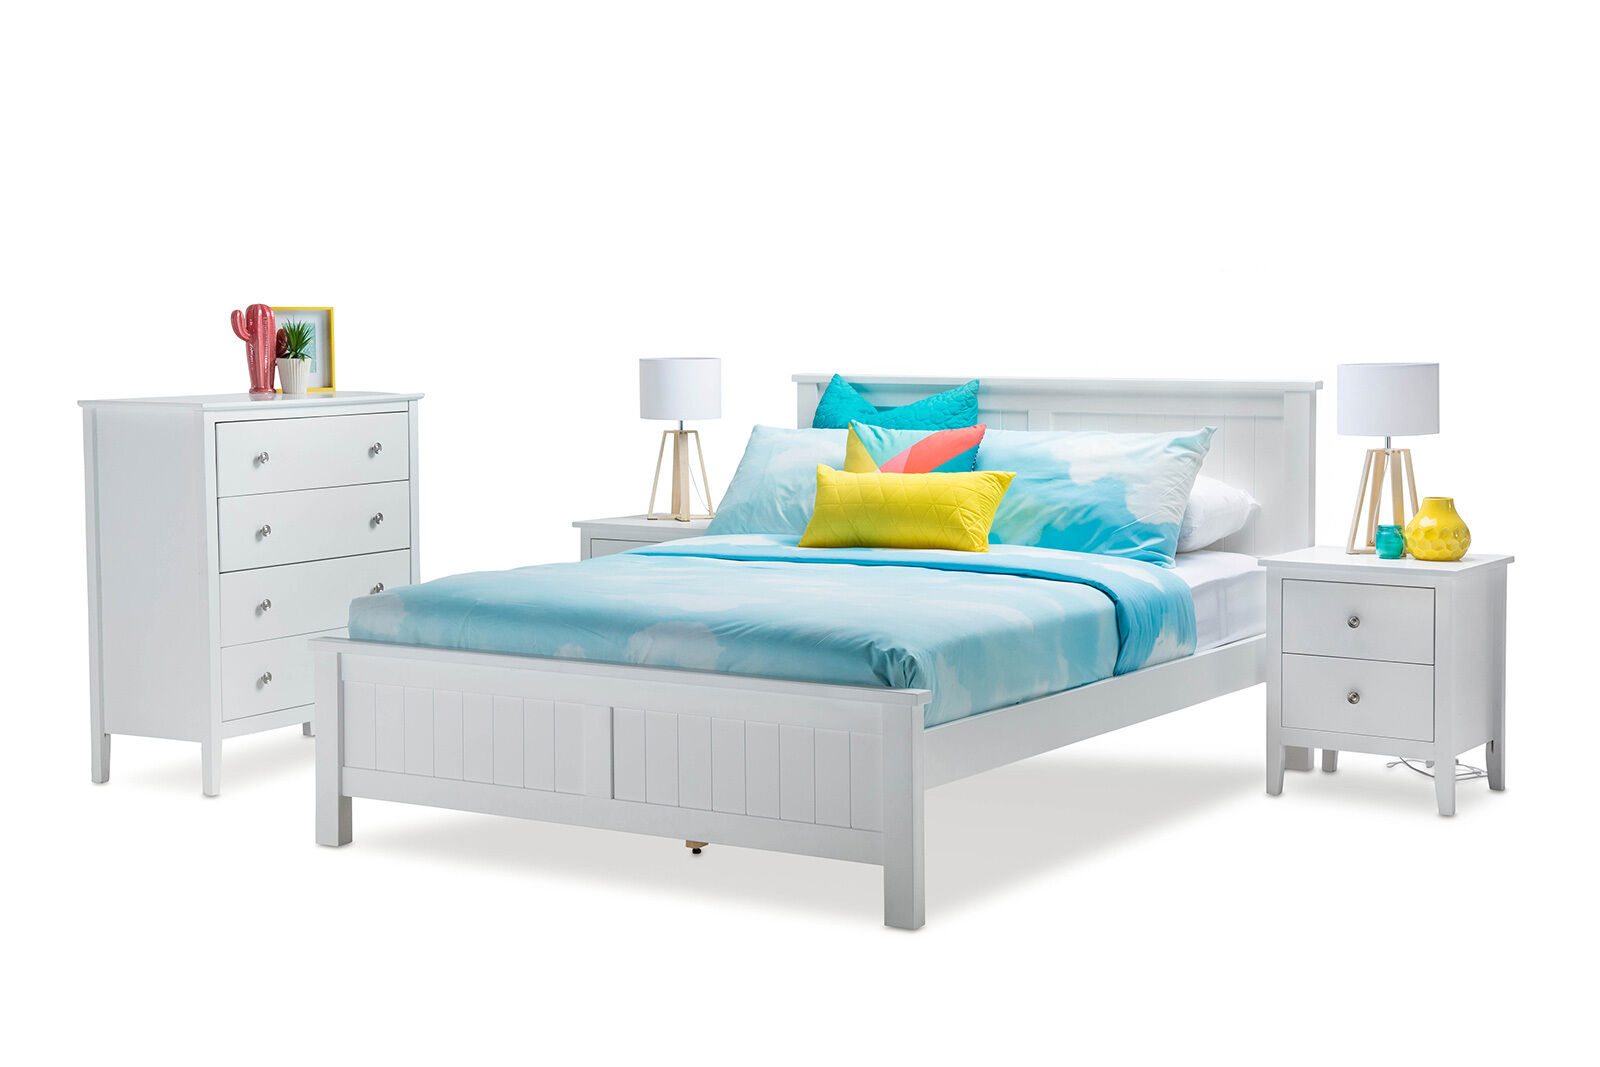 contemporary queen size panel bed frame coastal hampton white timber wood picclick au. Black Bedroom Furniture Sets. Home Design Ideas